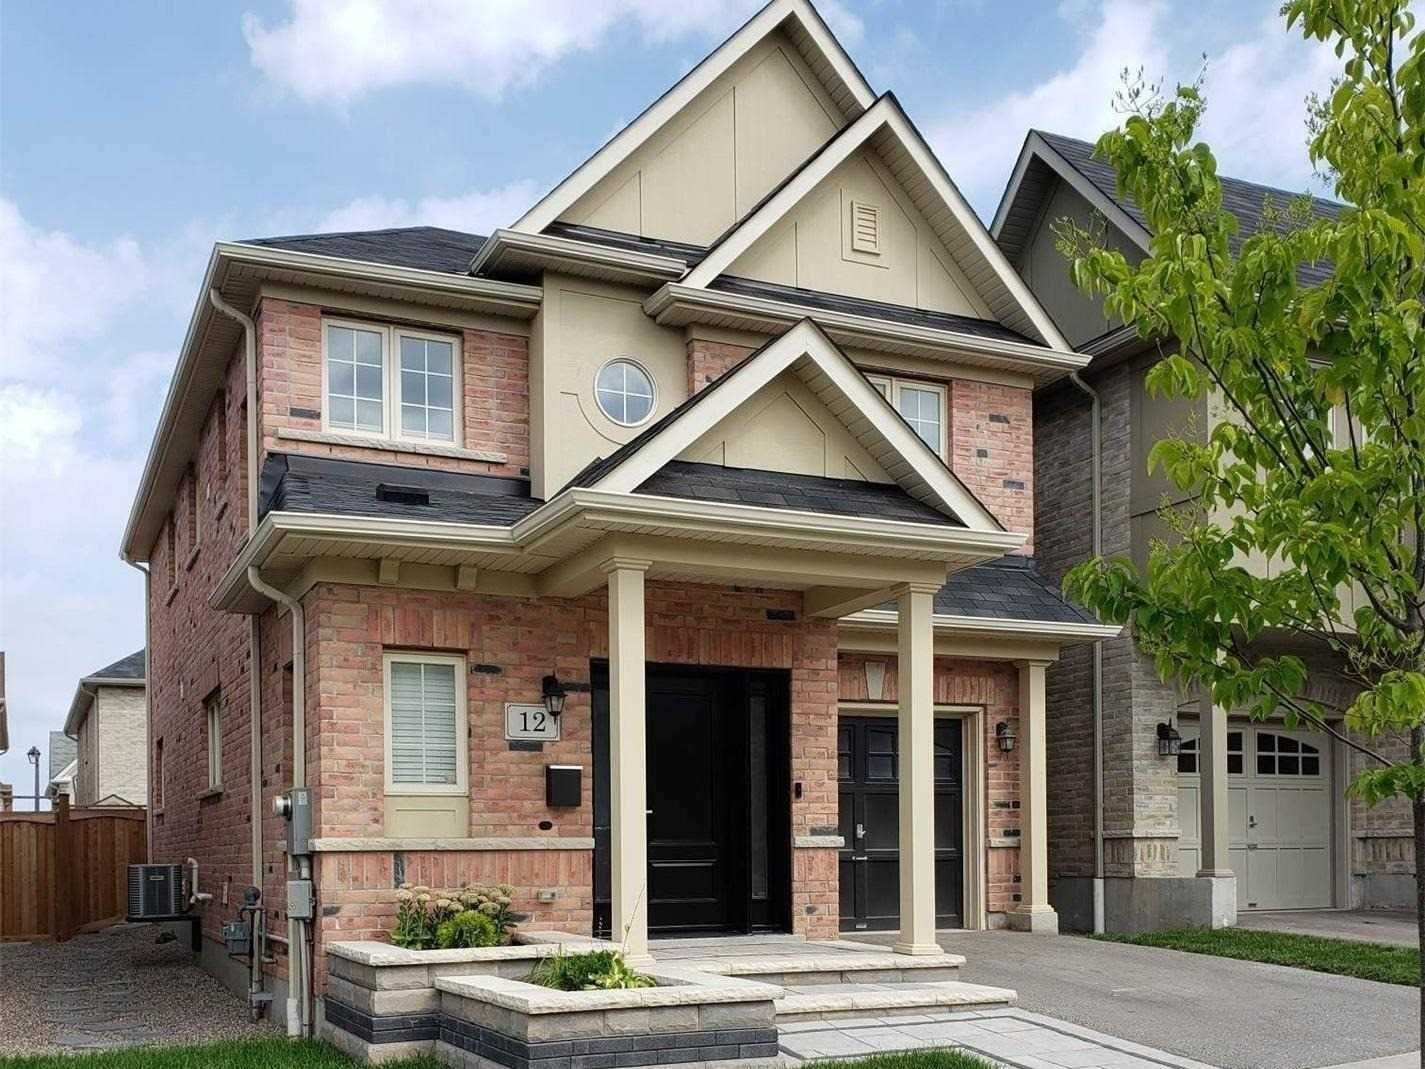 Main Photo: 12 Gaskin Street in Ajax: Central East House (2-Storey) for sale : MLS®# E5116046